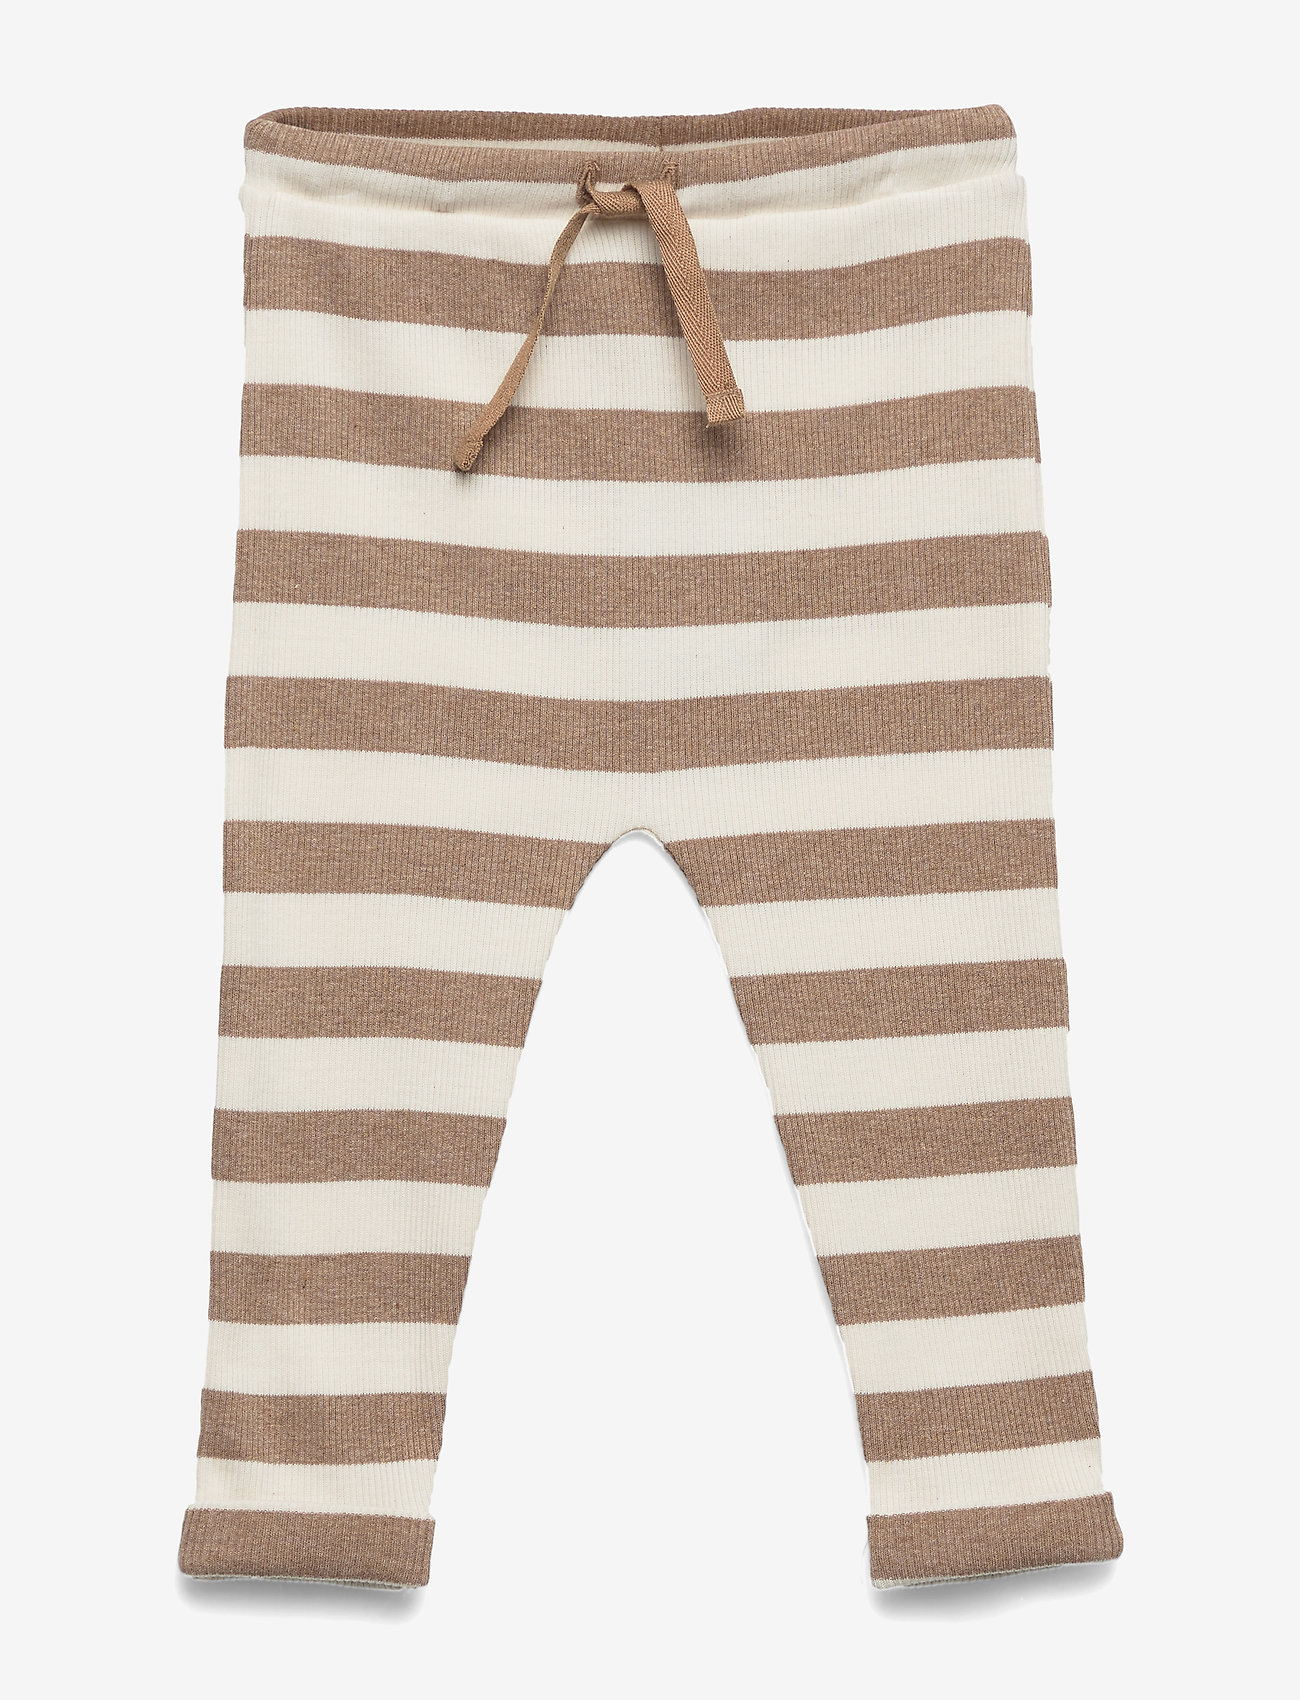 Noa Noa Miniature - Trousers - leggings - natural - 0